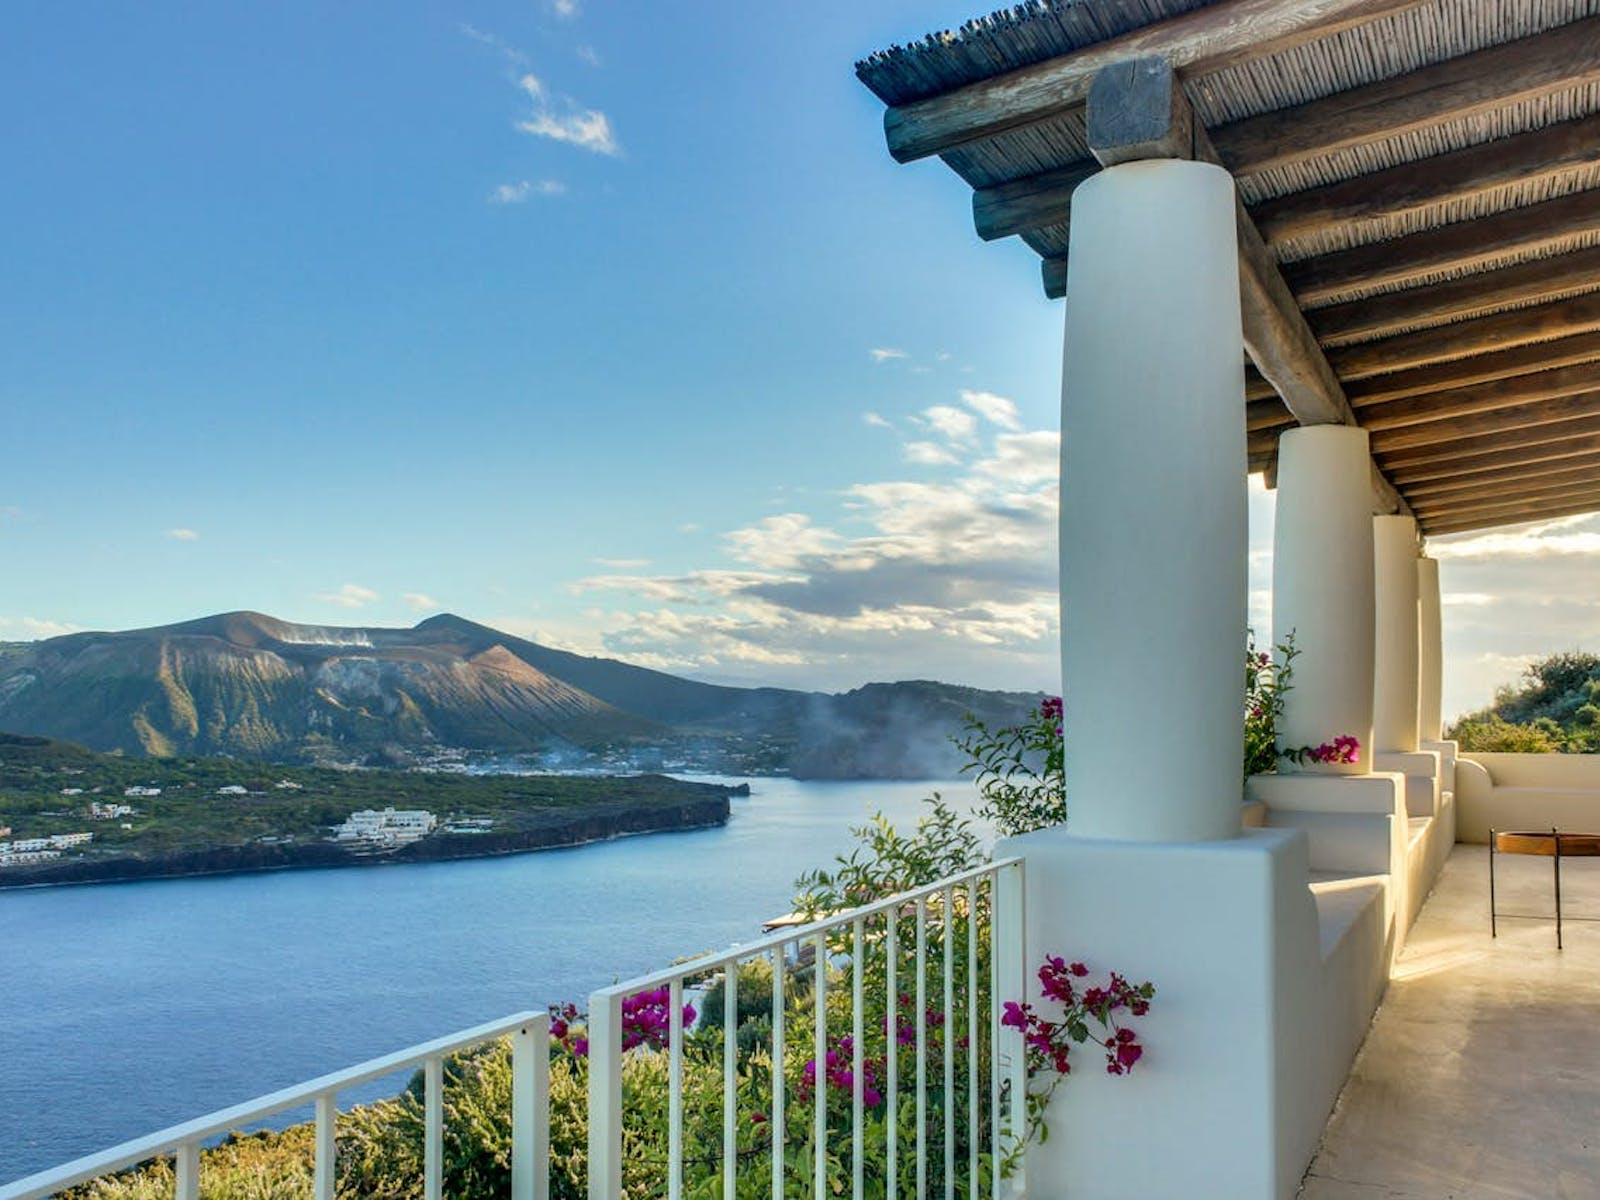 view of Tyrrhenian Sea from waterfront vacation villa on the island of Lipari